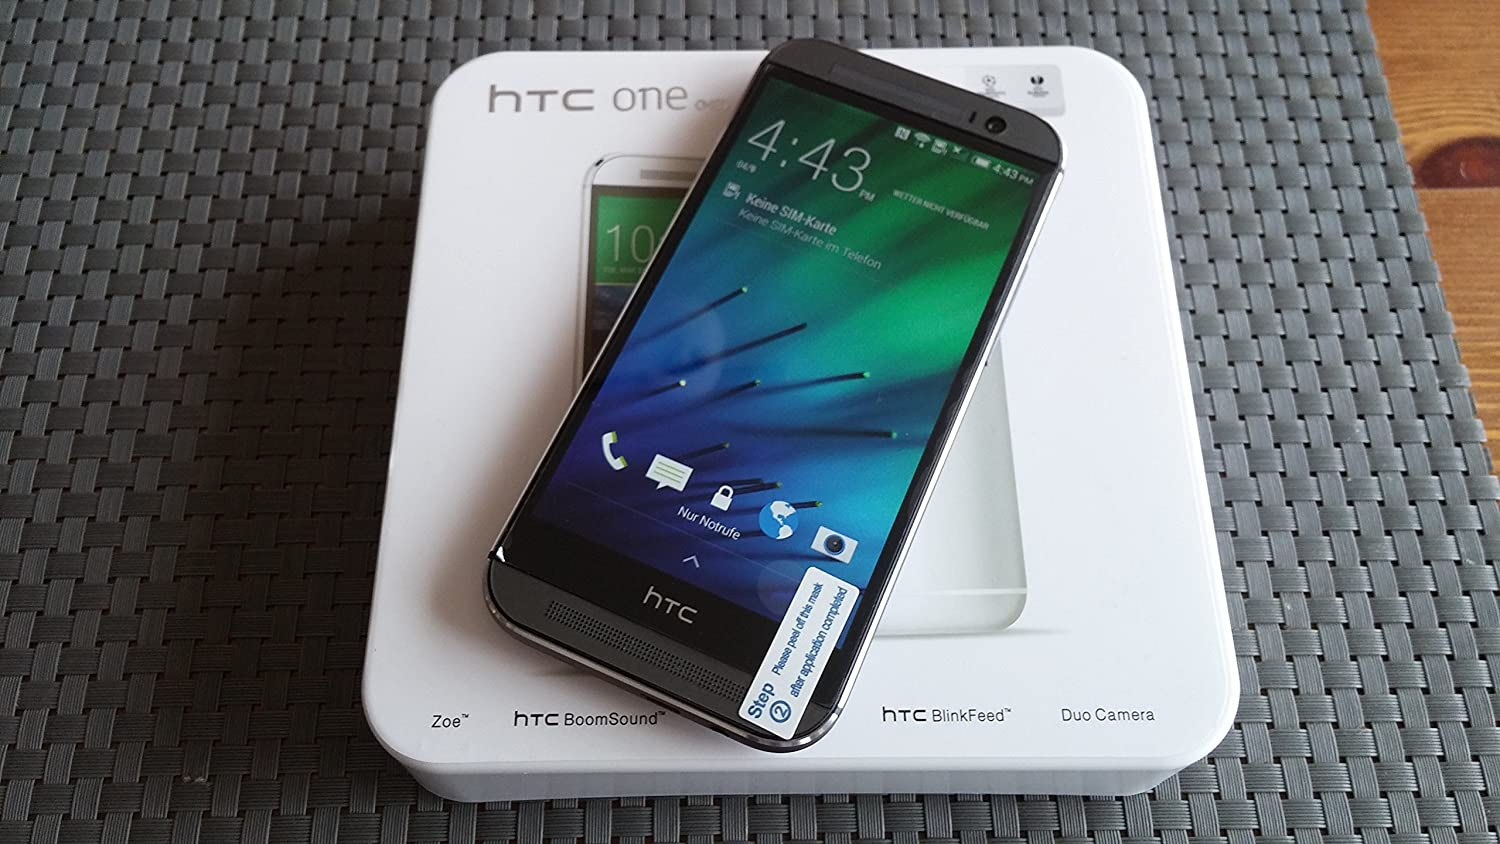 Htc One M8s Smartphone 5 Zoll Lcd Display 127 Cm 16 Gb Interner Speicher 2 Gb Ram 13 Megapixel Kamera Android 50 Metalisches Grau